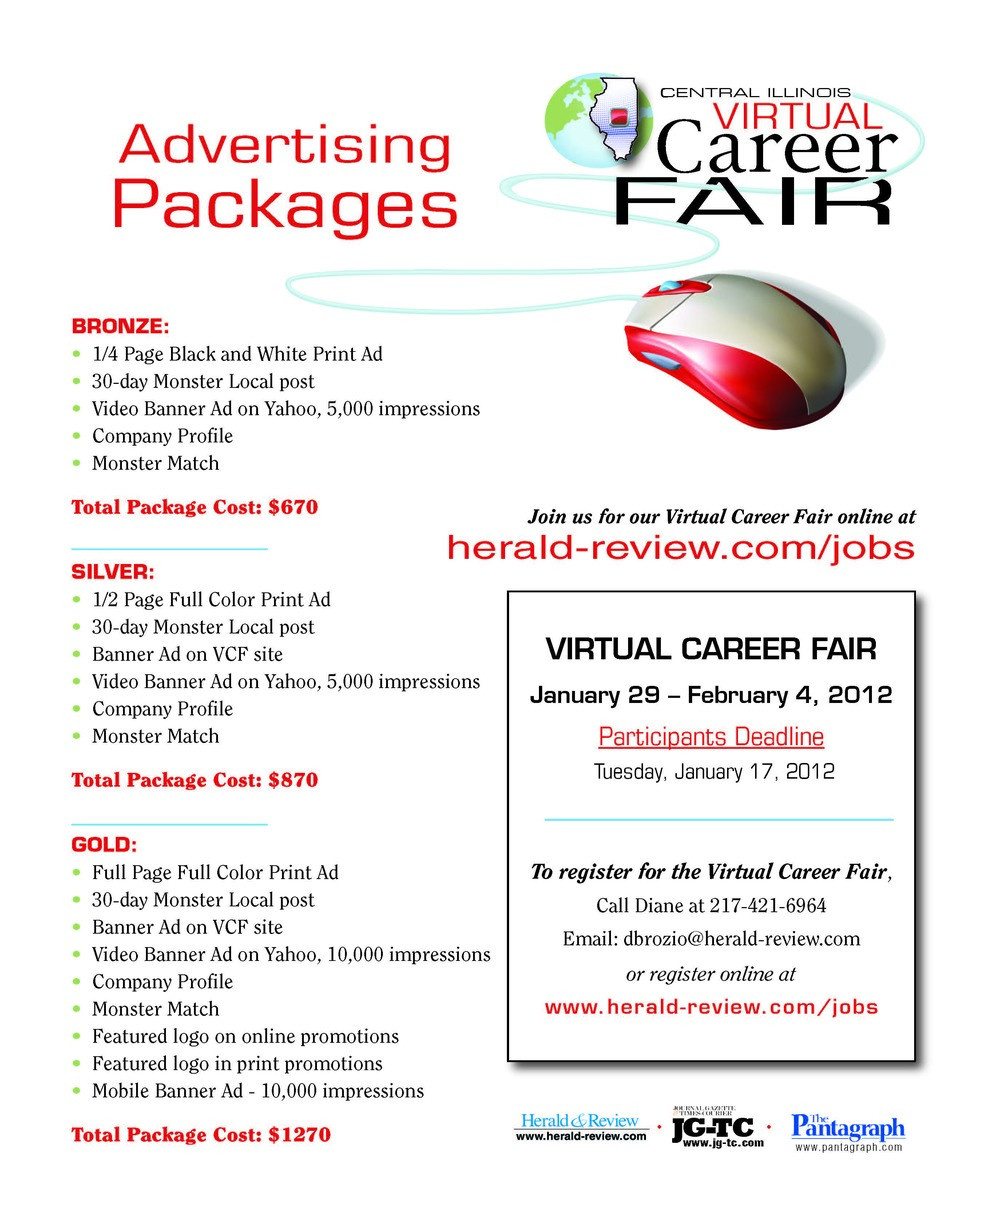 Central Illinois Virtual Career Fair flyer (back)